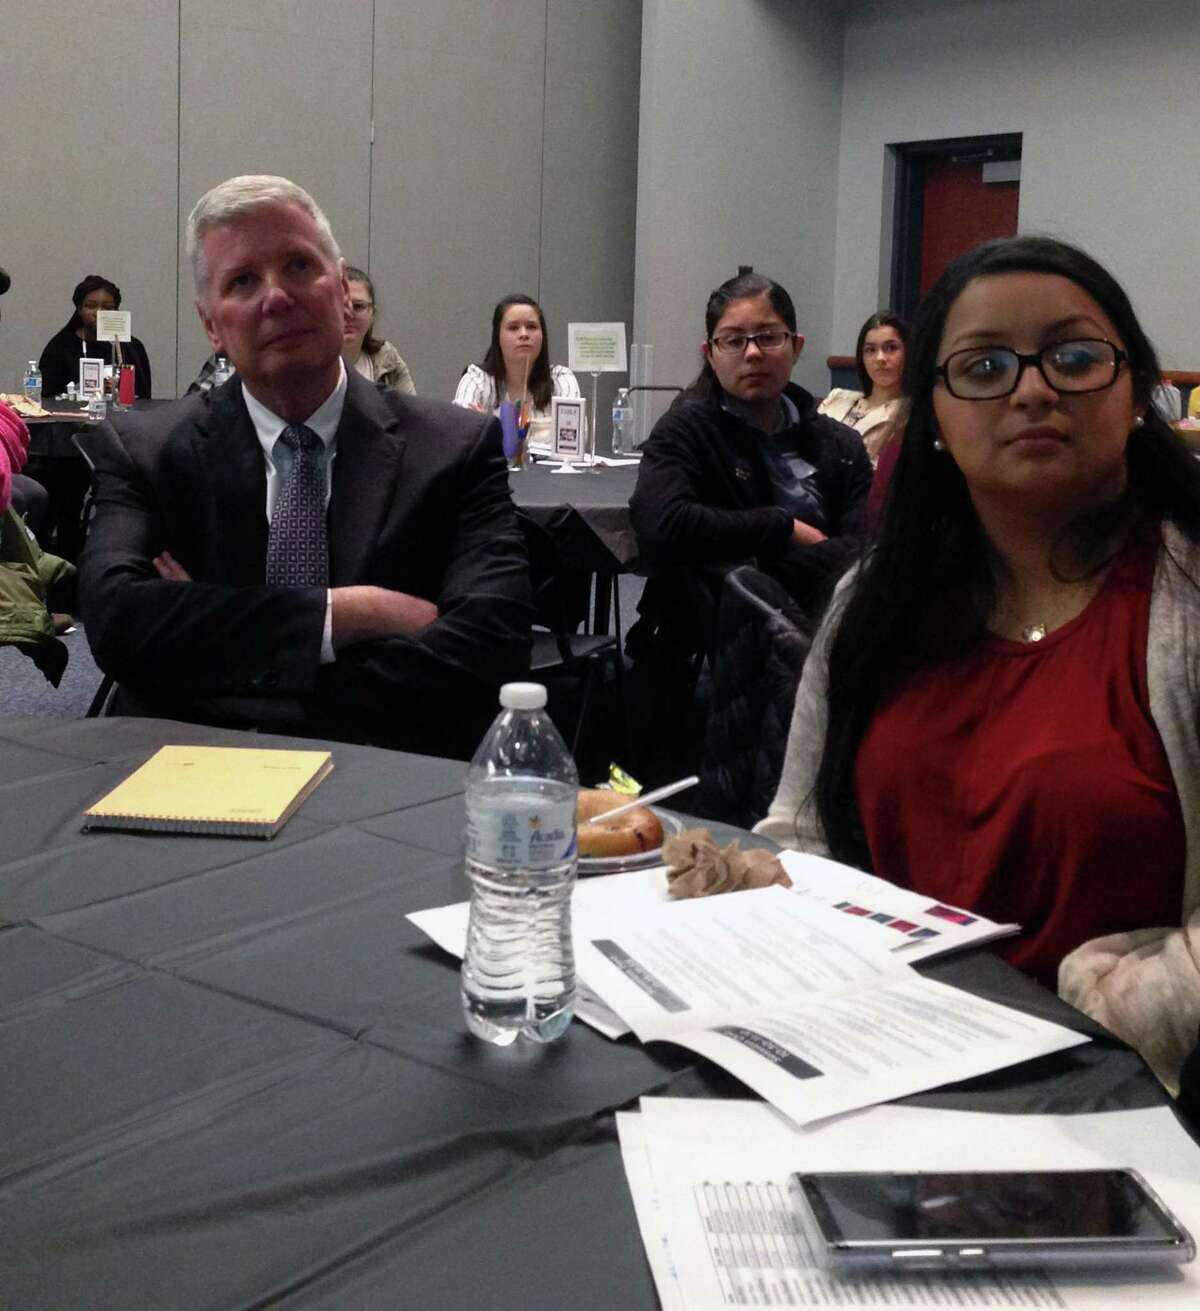 Fairfield Warde Principal David Ebling and student Erika Romero at the Identity and Education Conference, March 29, 2018, at Southern Connecticut University in New Haven, Conn.